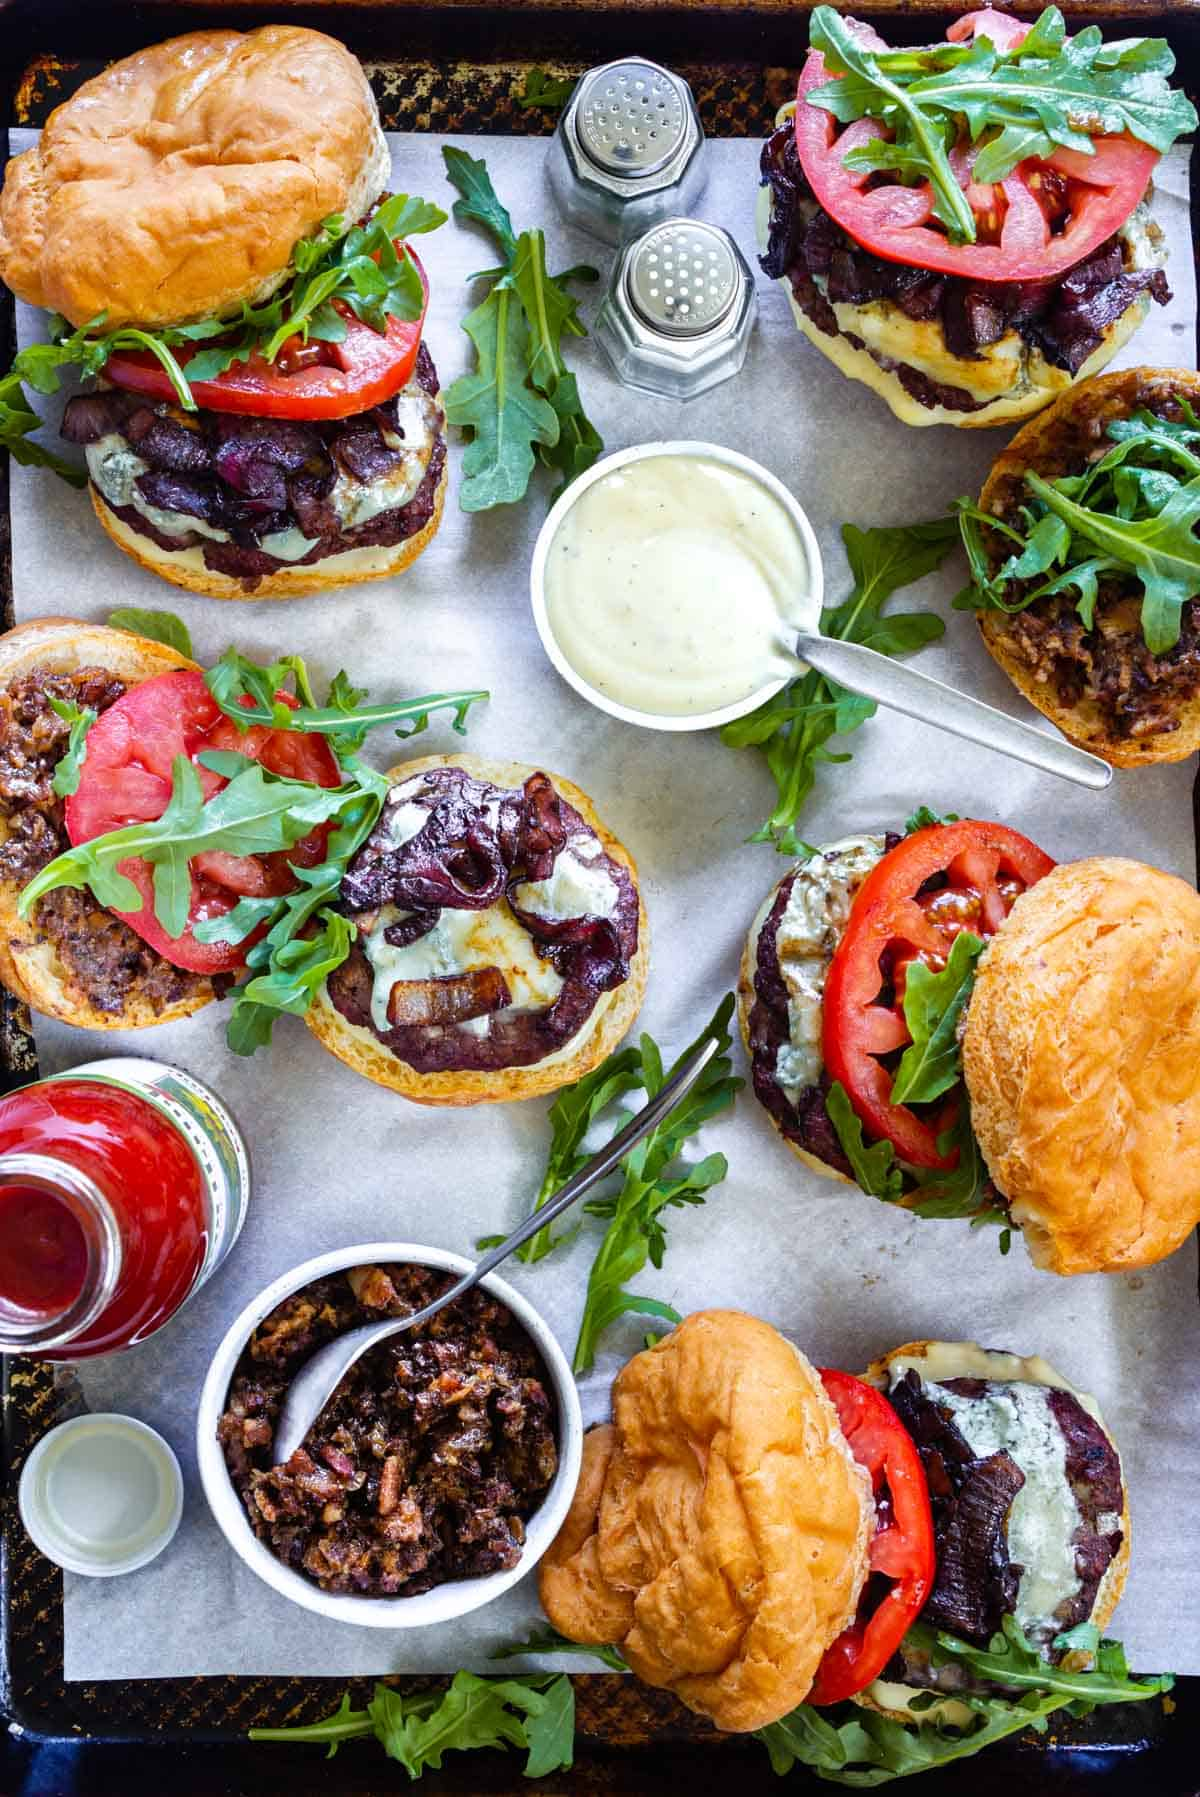 A zoomed in view of a tray loaded with bacon blue cheese burgers and small side dishes with roasted garlic aioli and bacon jam. A salt and pepper shaker and a ketchup bottle also accompany the burgers.